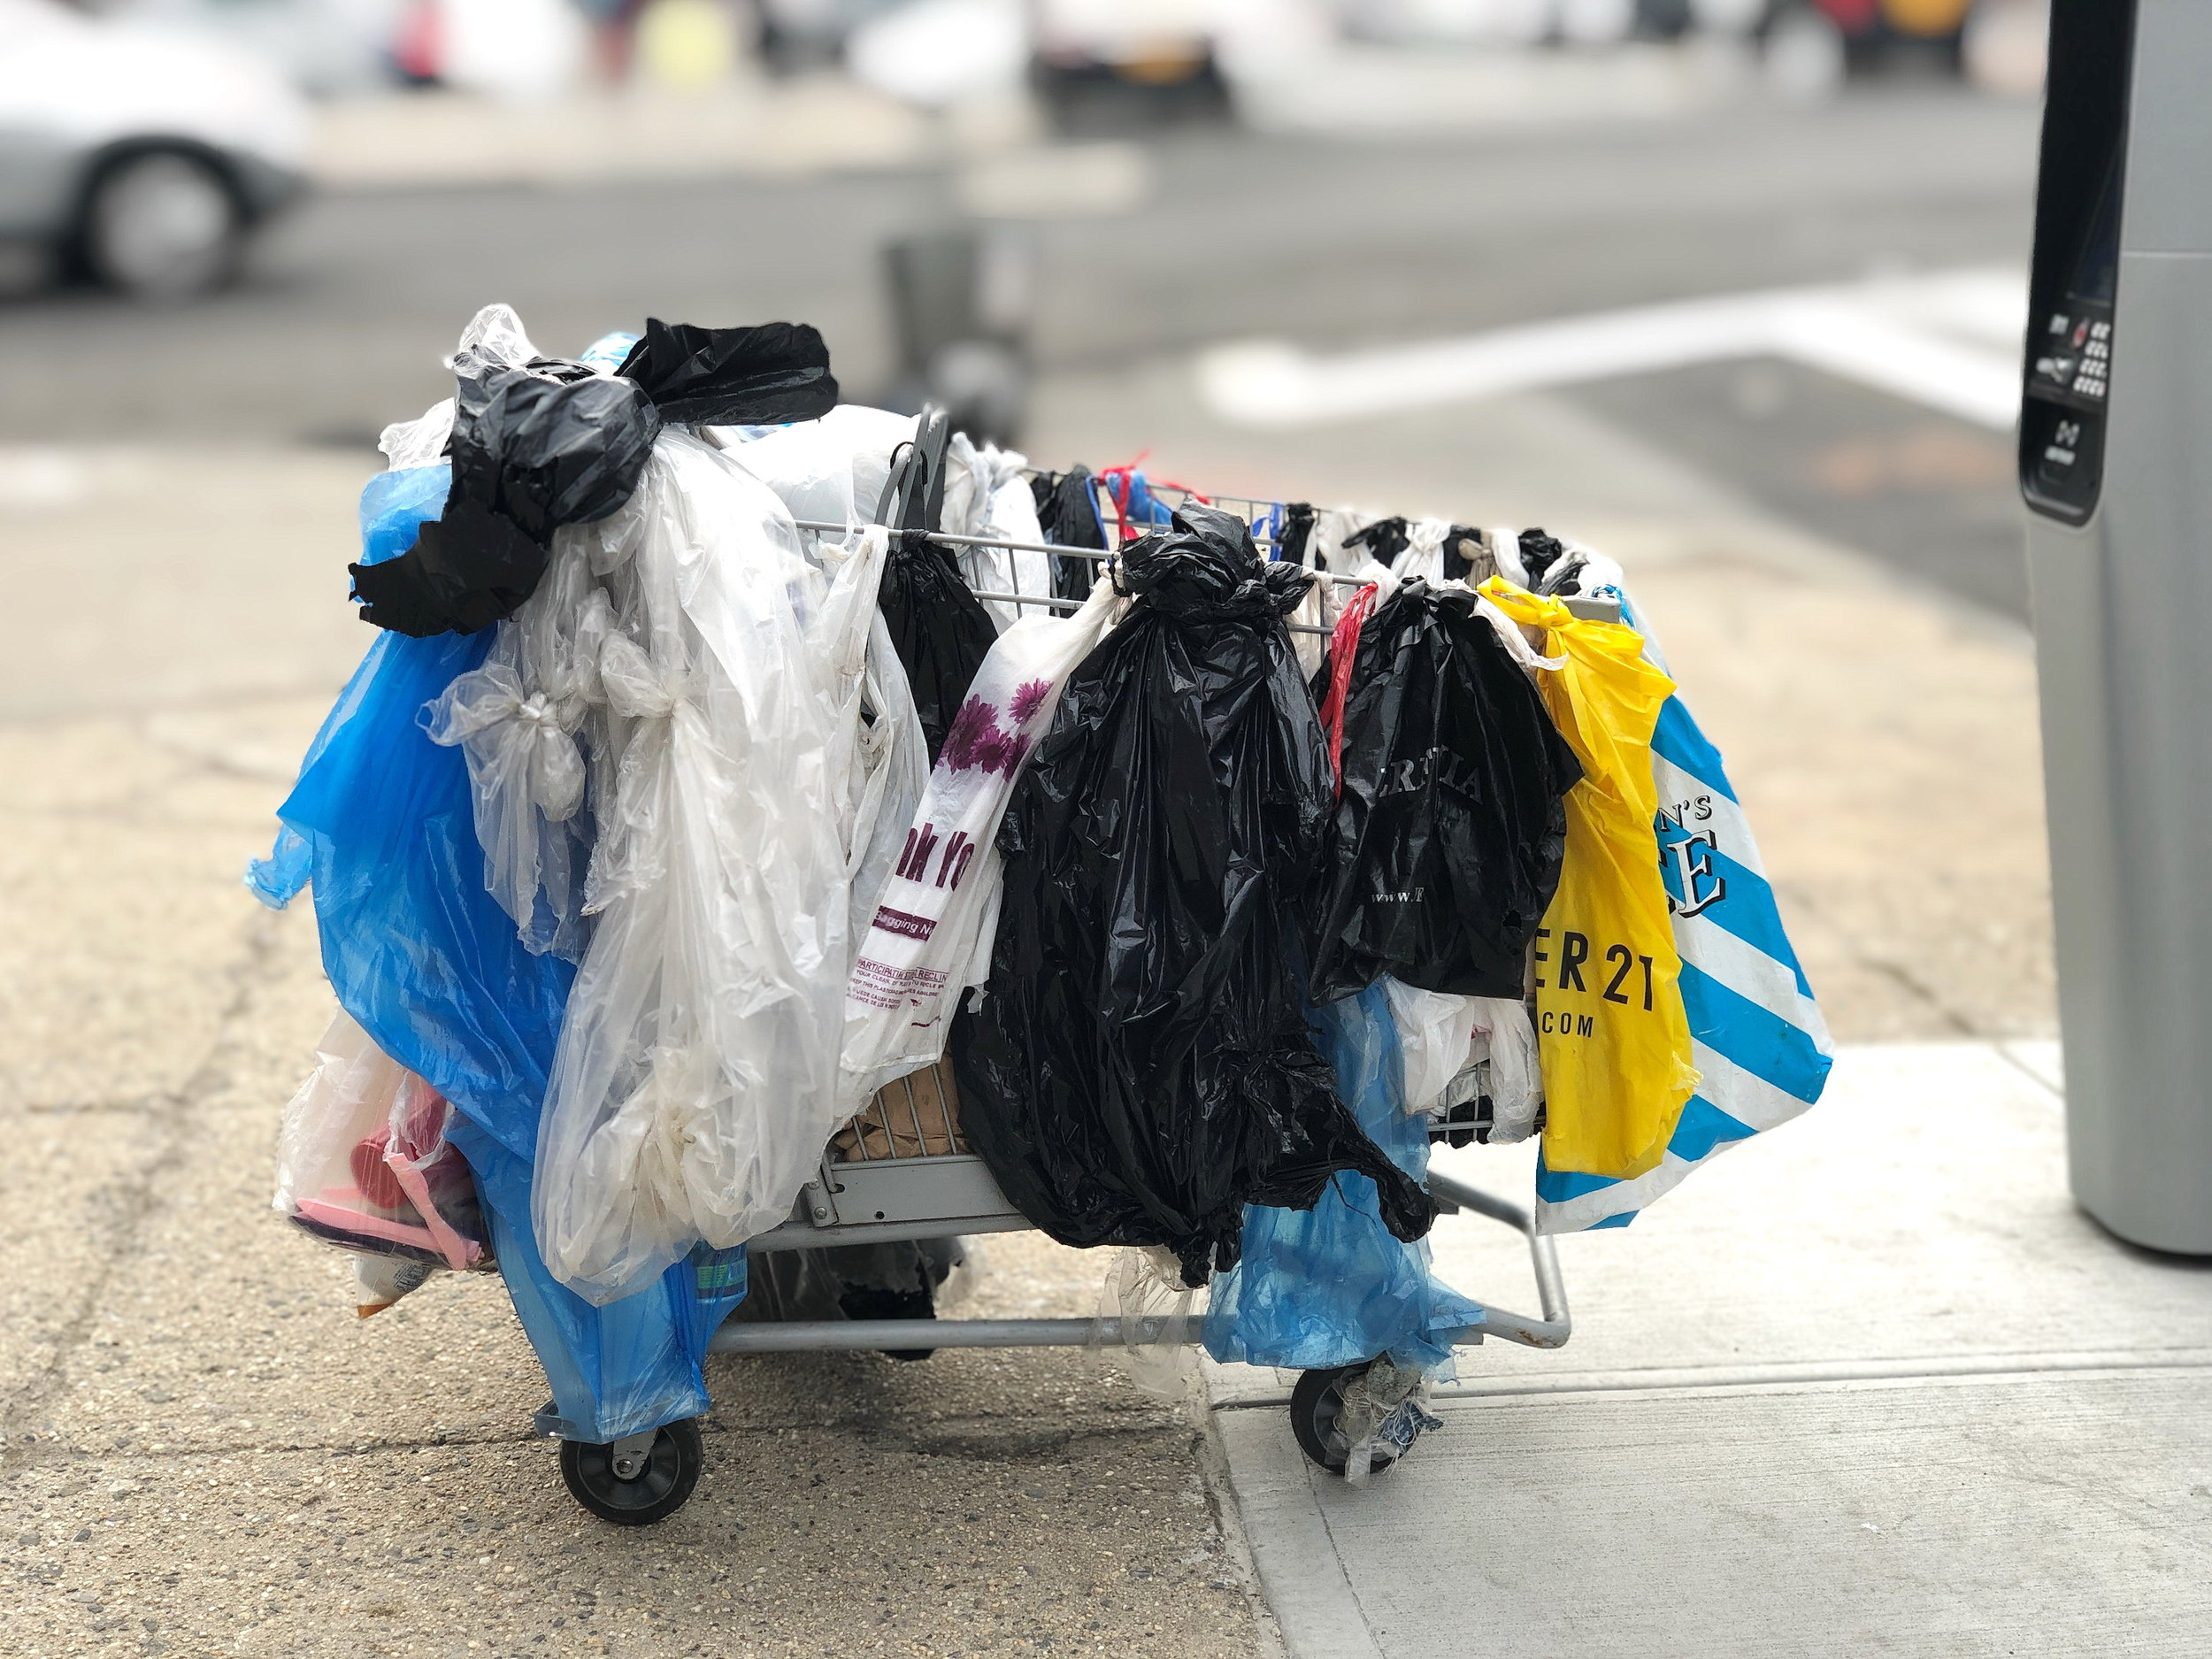 2,000,000 per Minute  - Americans use 2 million single-use plastic bags per minute. Worldwide, use is up to 500 billion per minute. The average use lasts for 12 minutes.